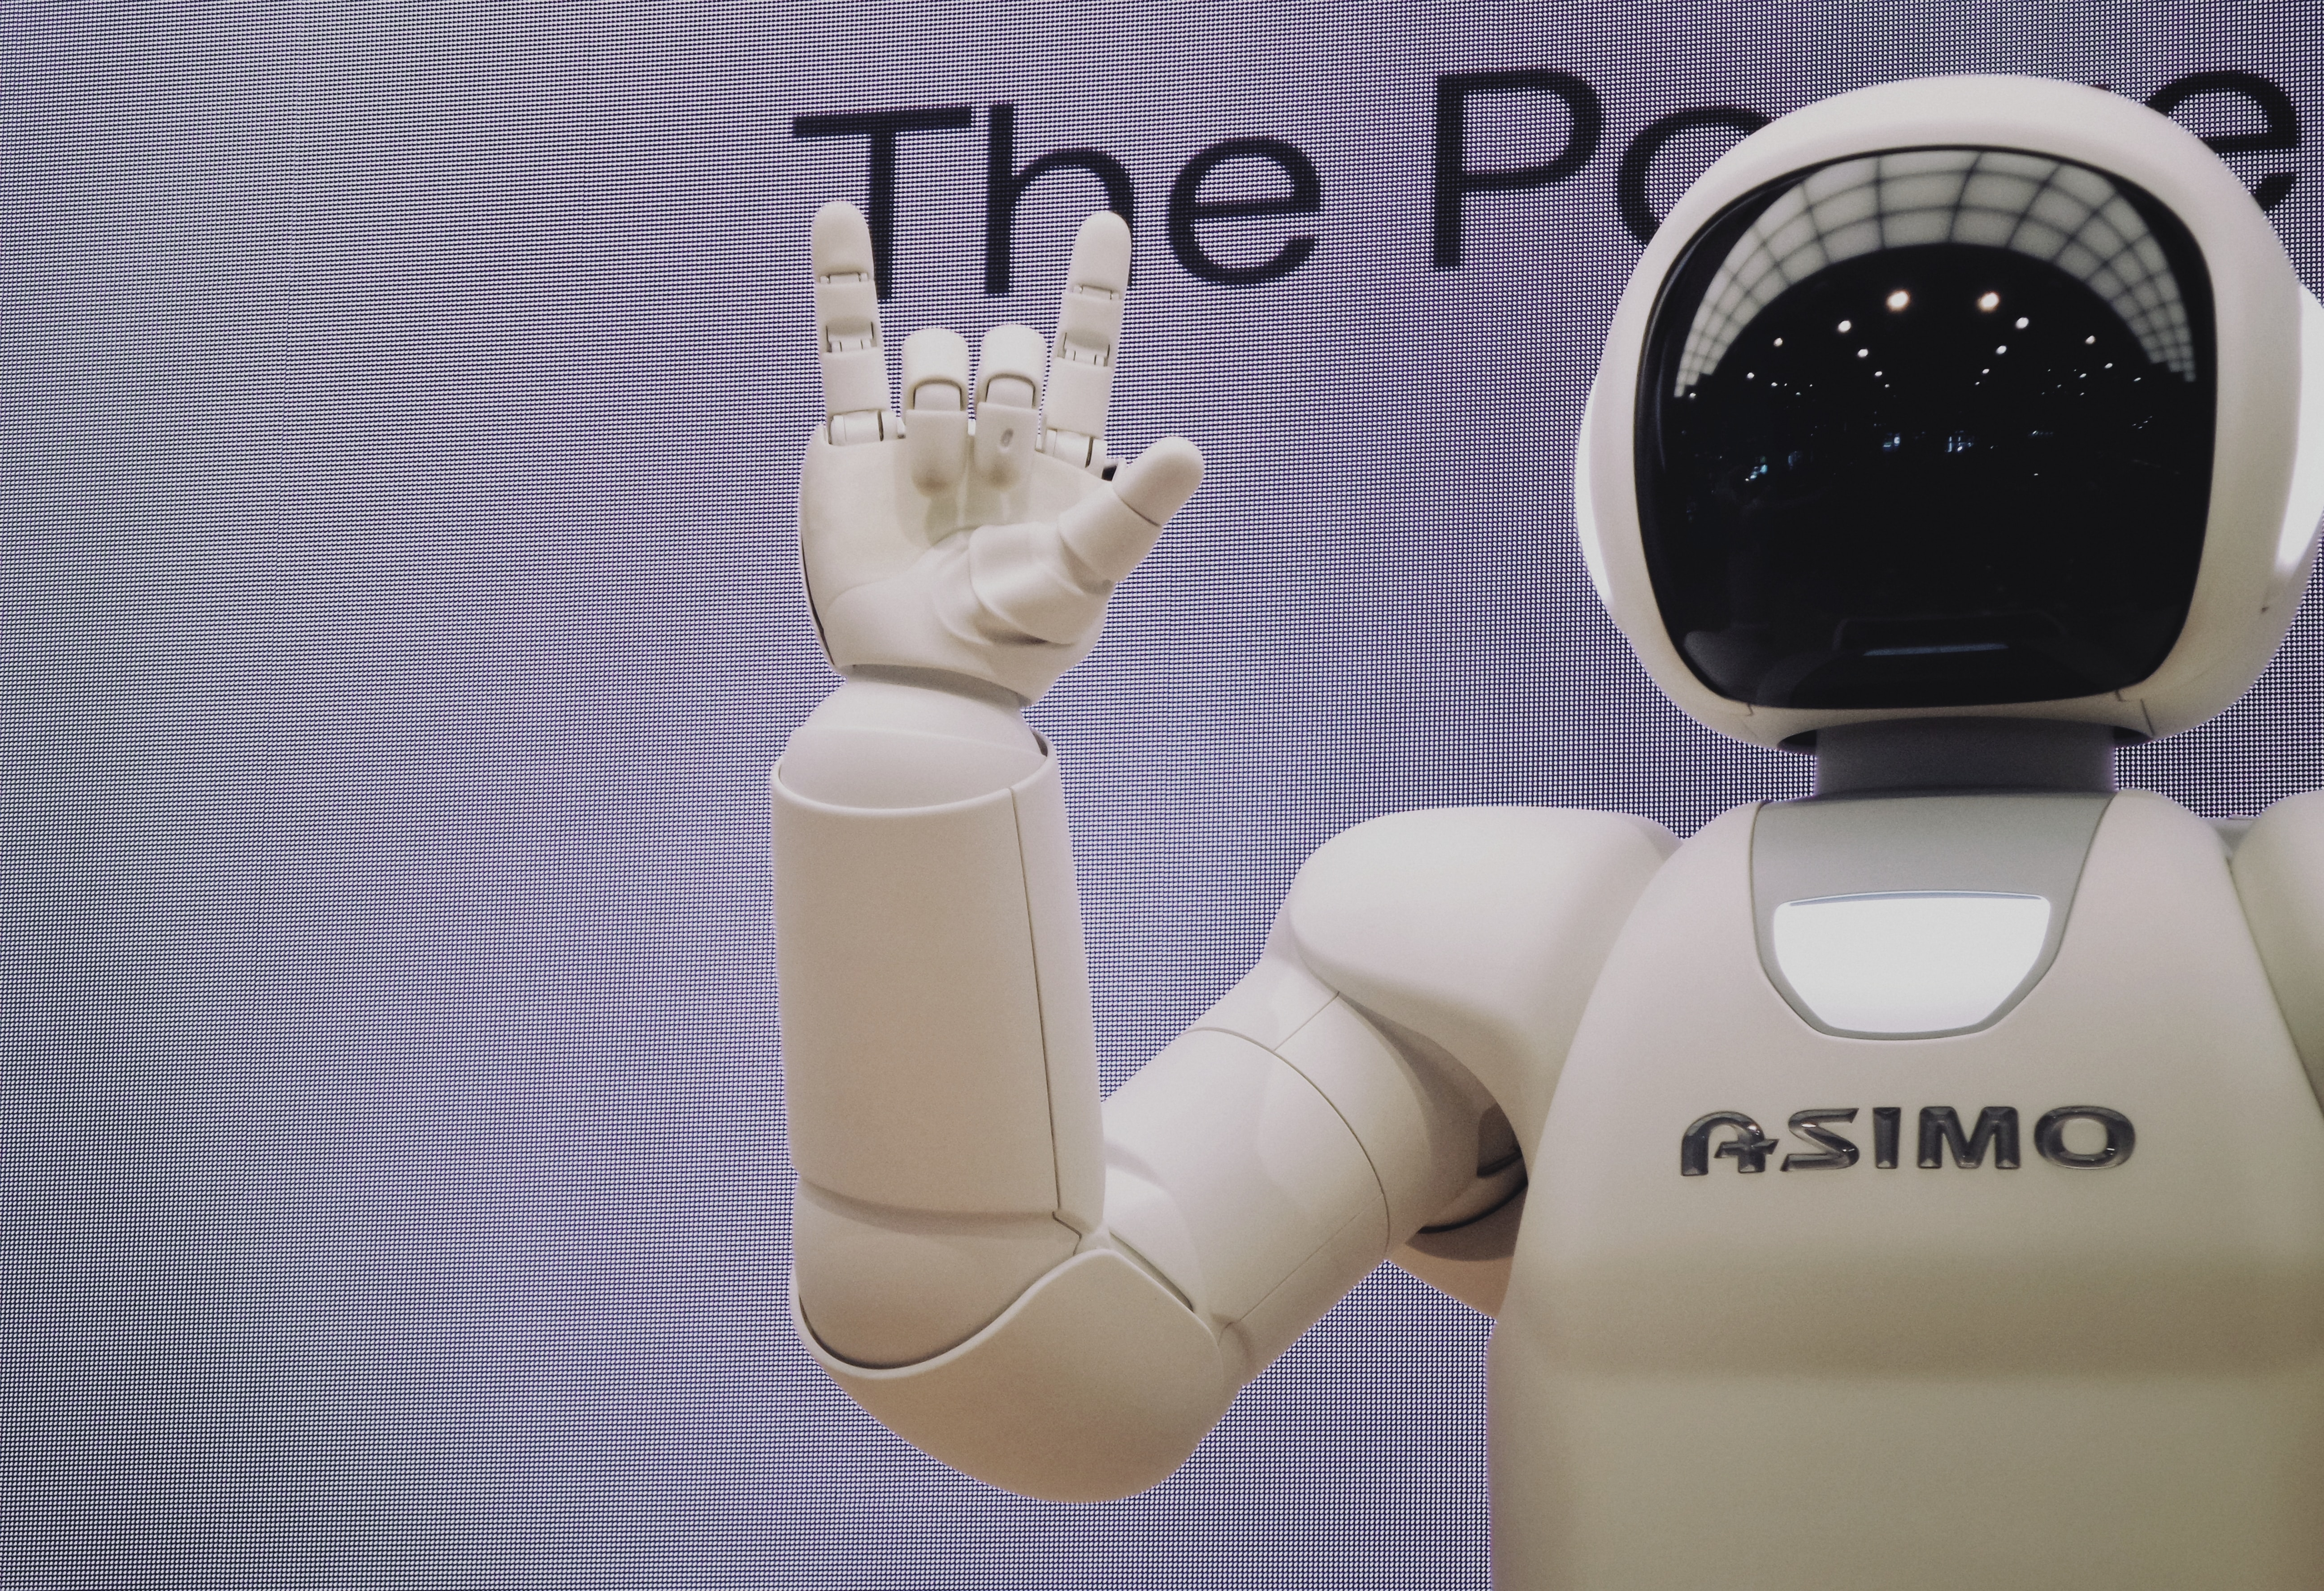 A picture pop the robot Asimo